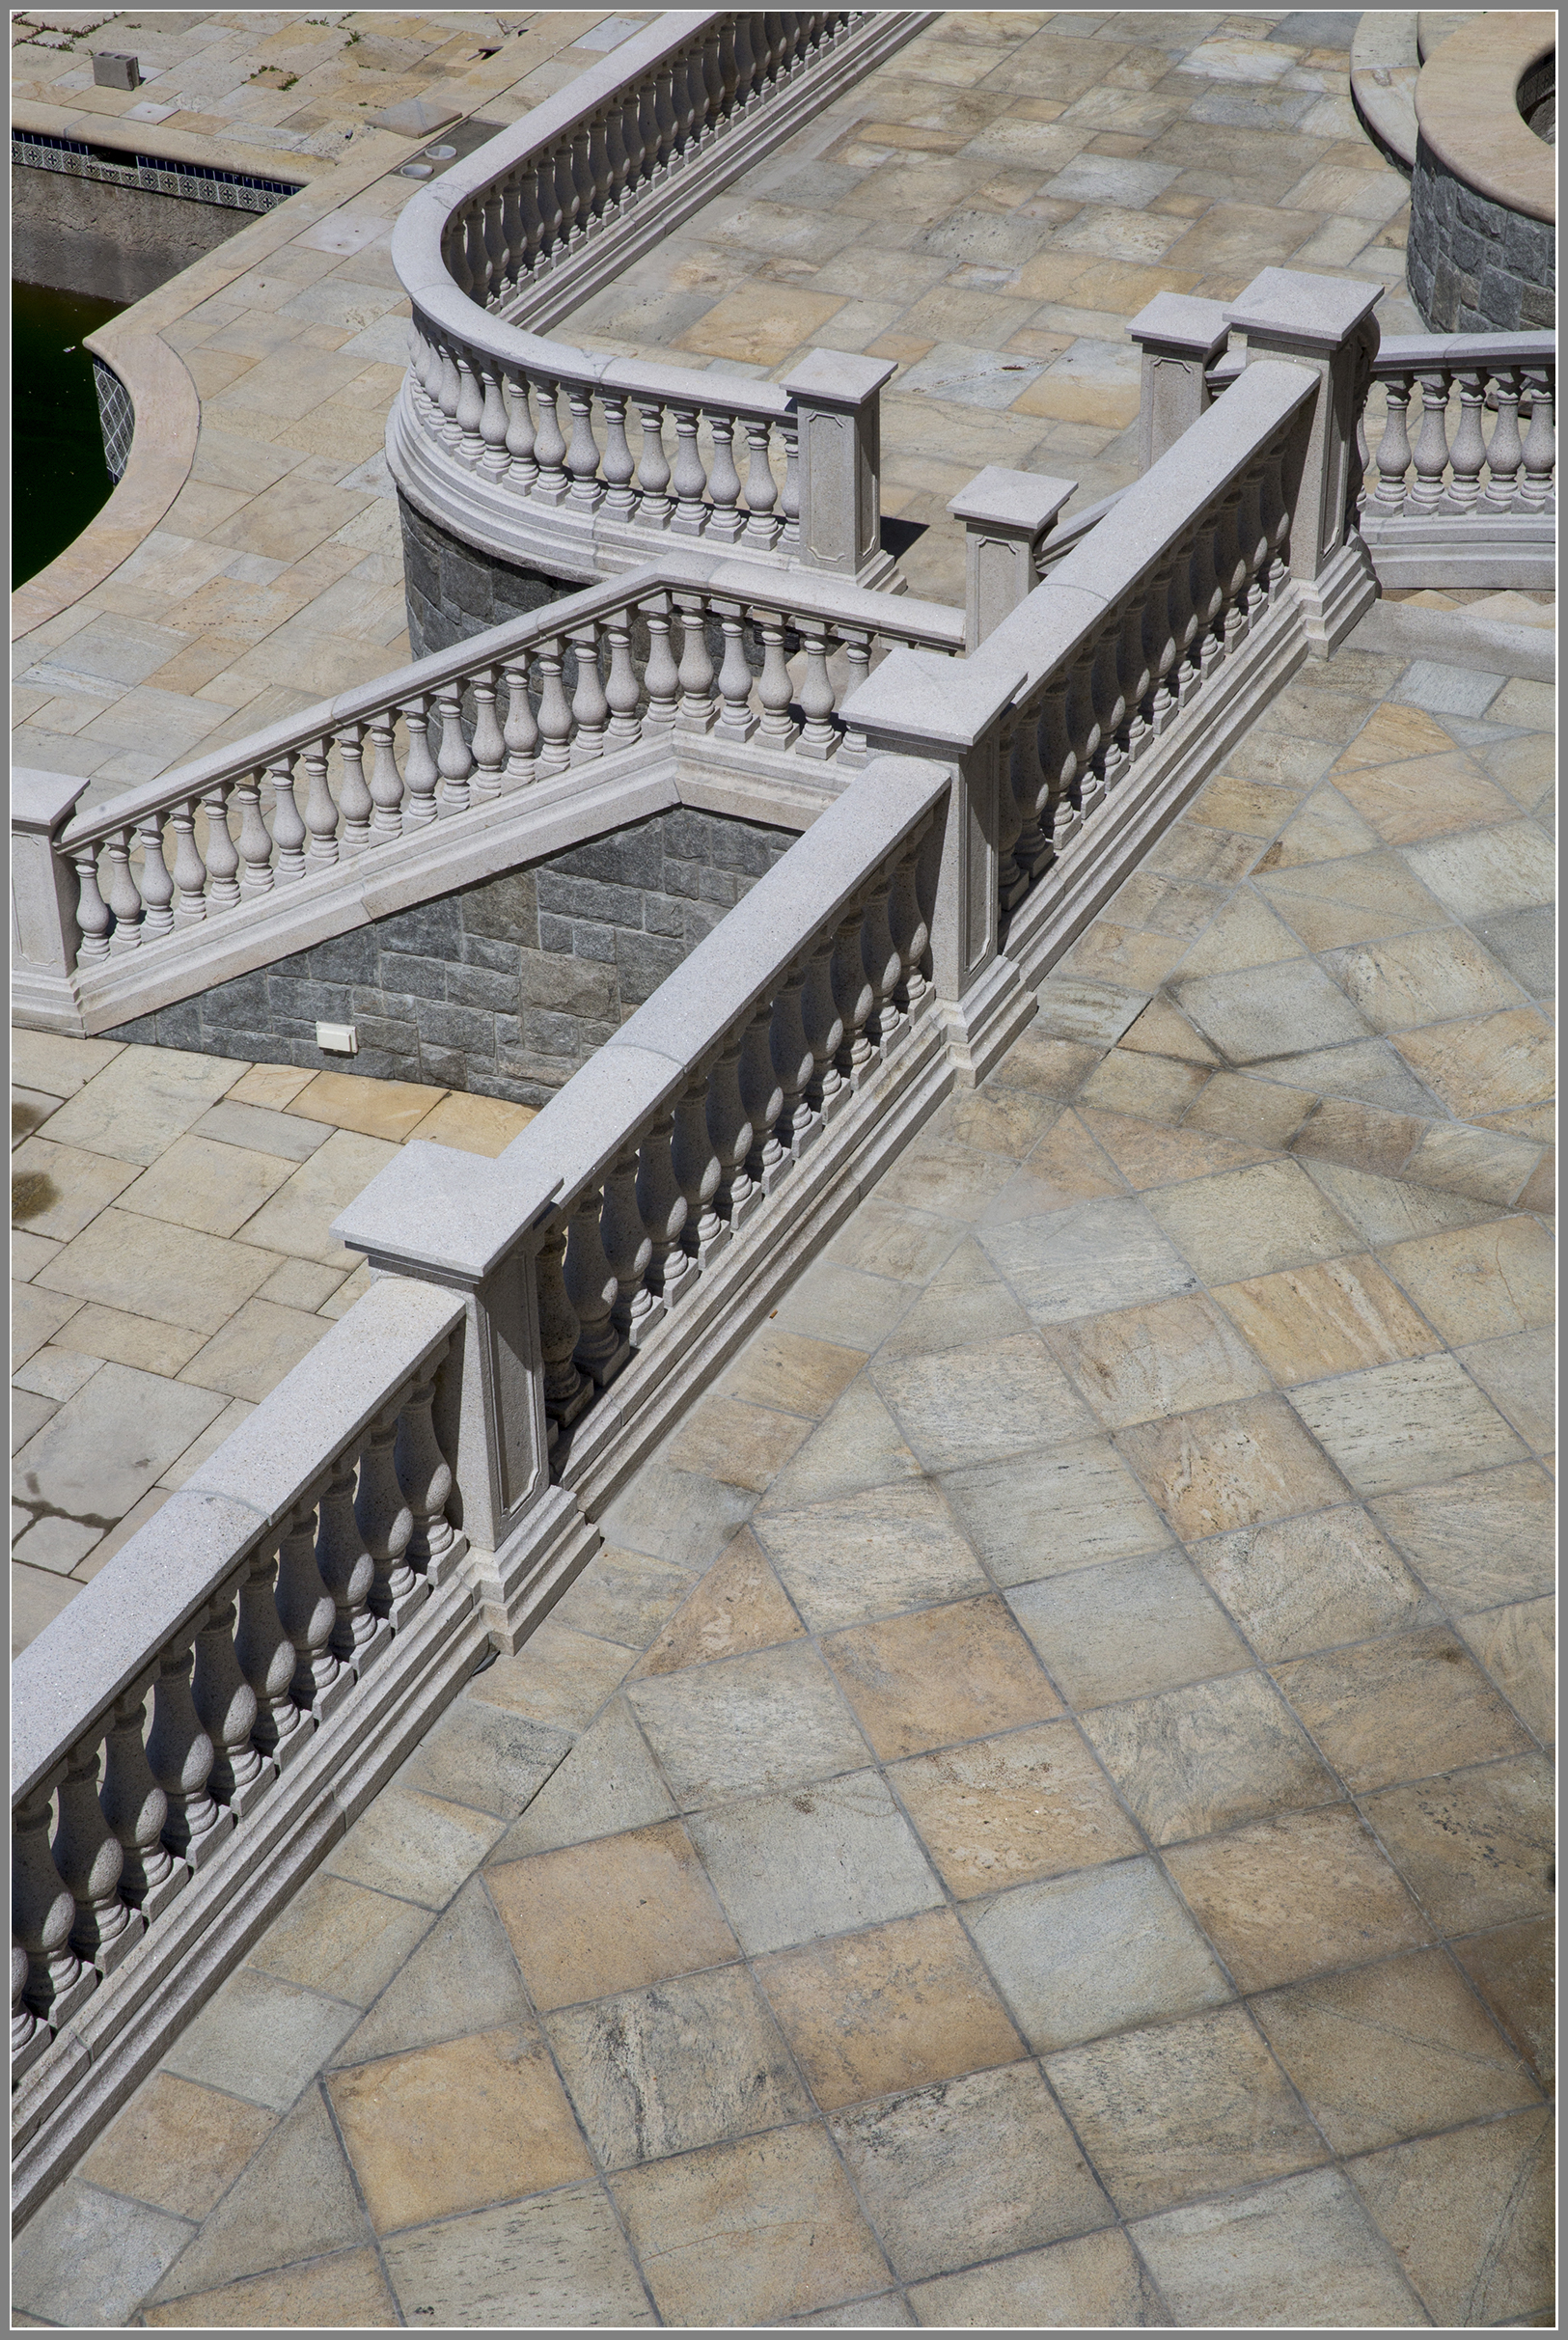 Granite balustrade system and patio